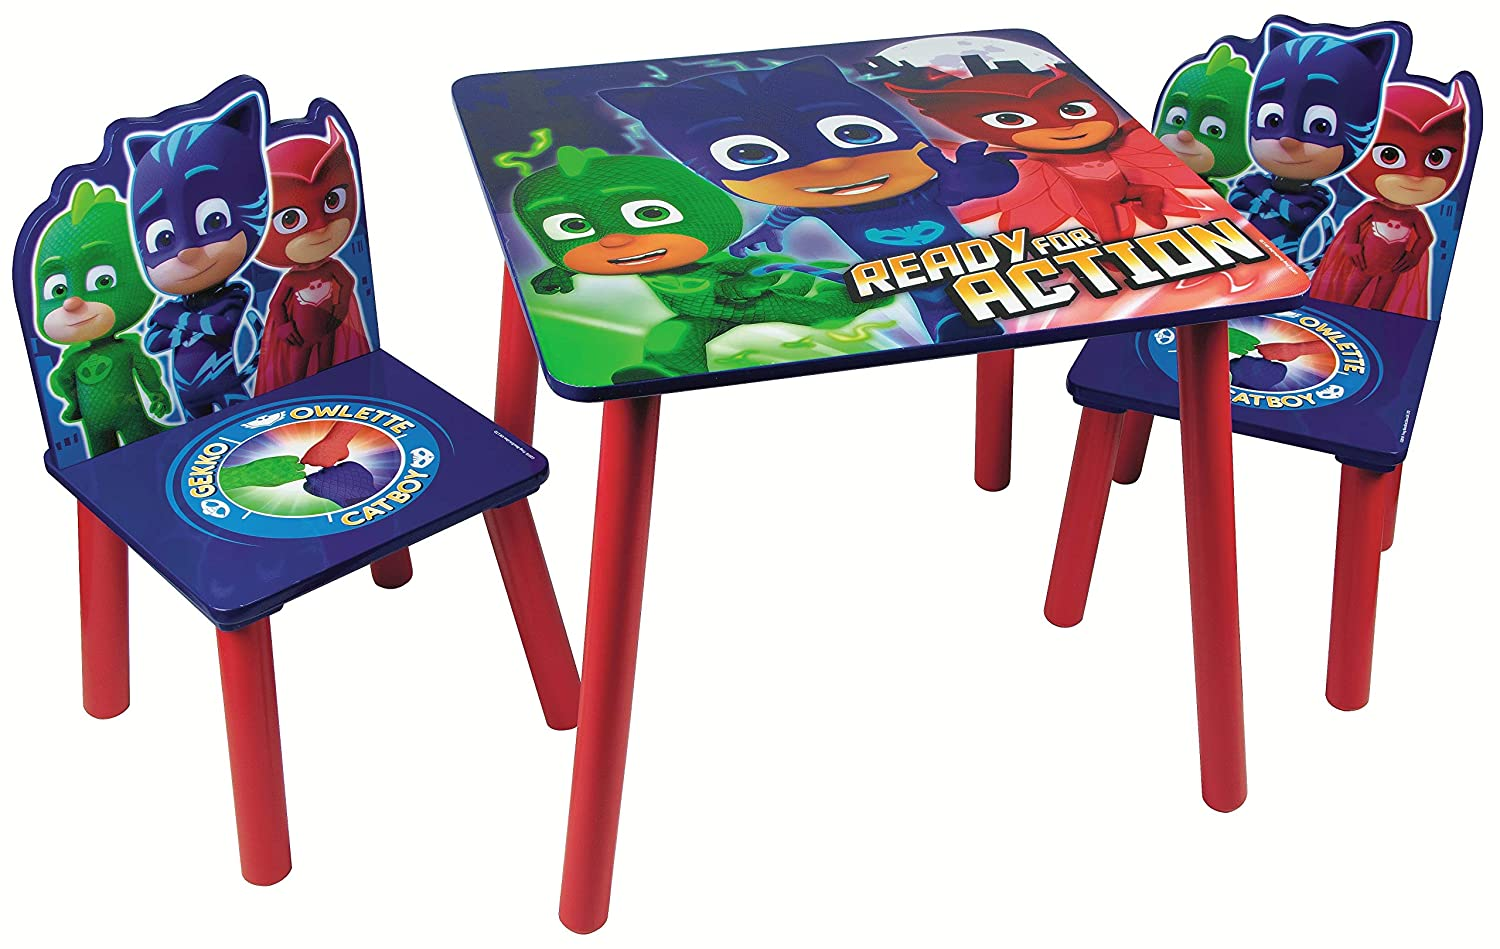 Children Wooden Table & Chairs Sets - Indoor Childrens Toddlers Playroom Furniture … (Disney Cars) Global